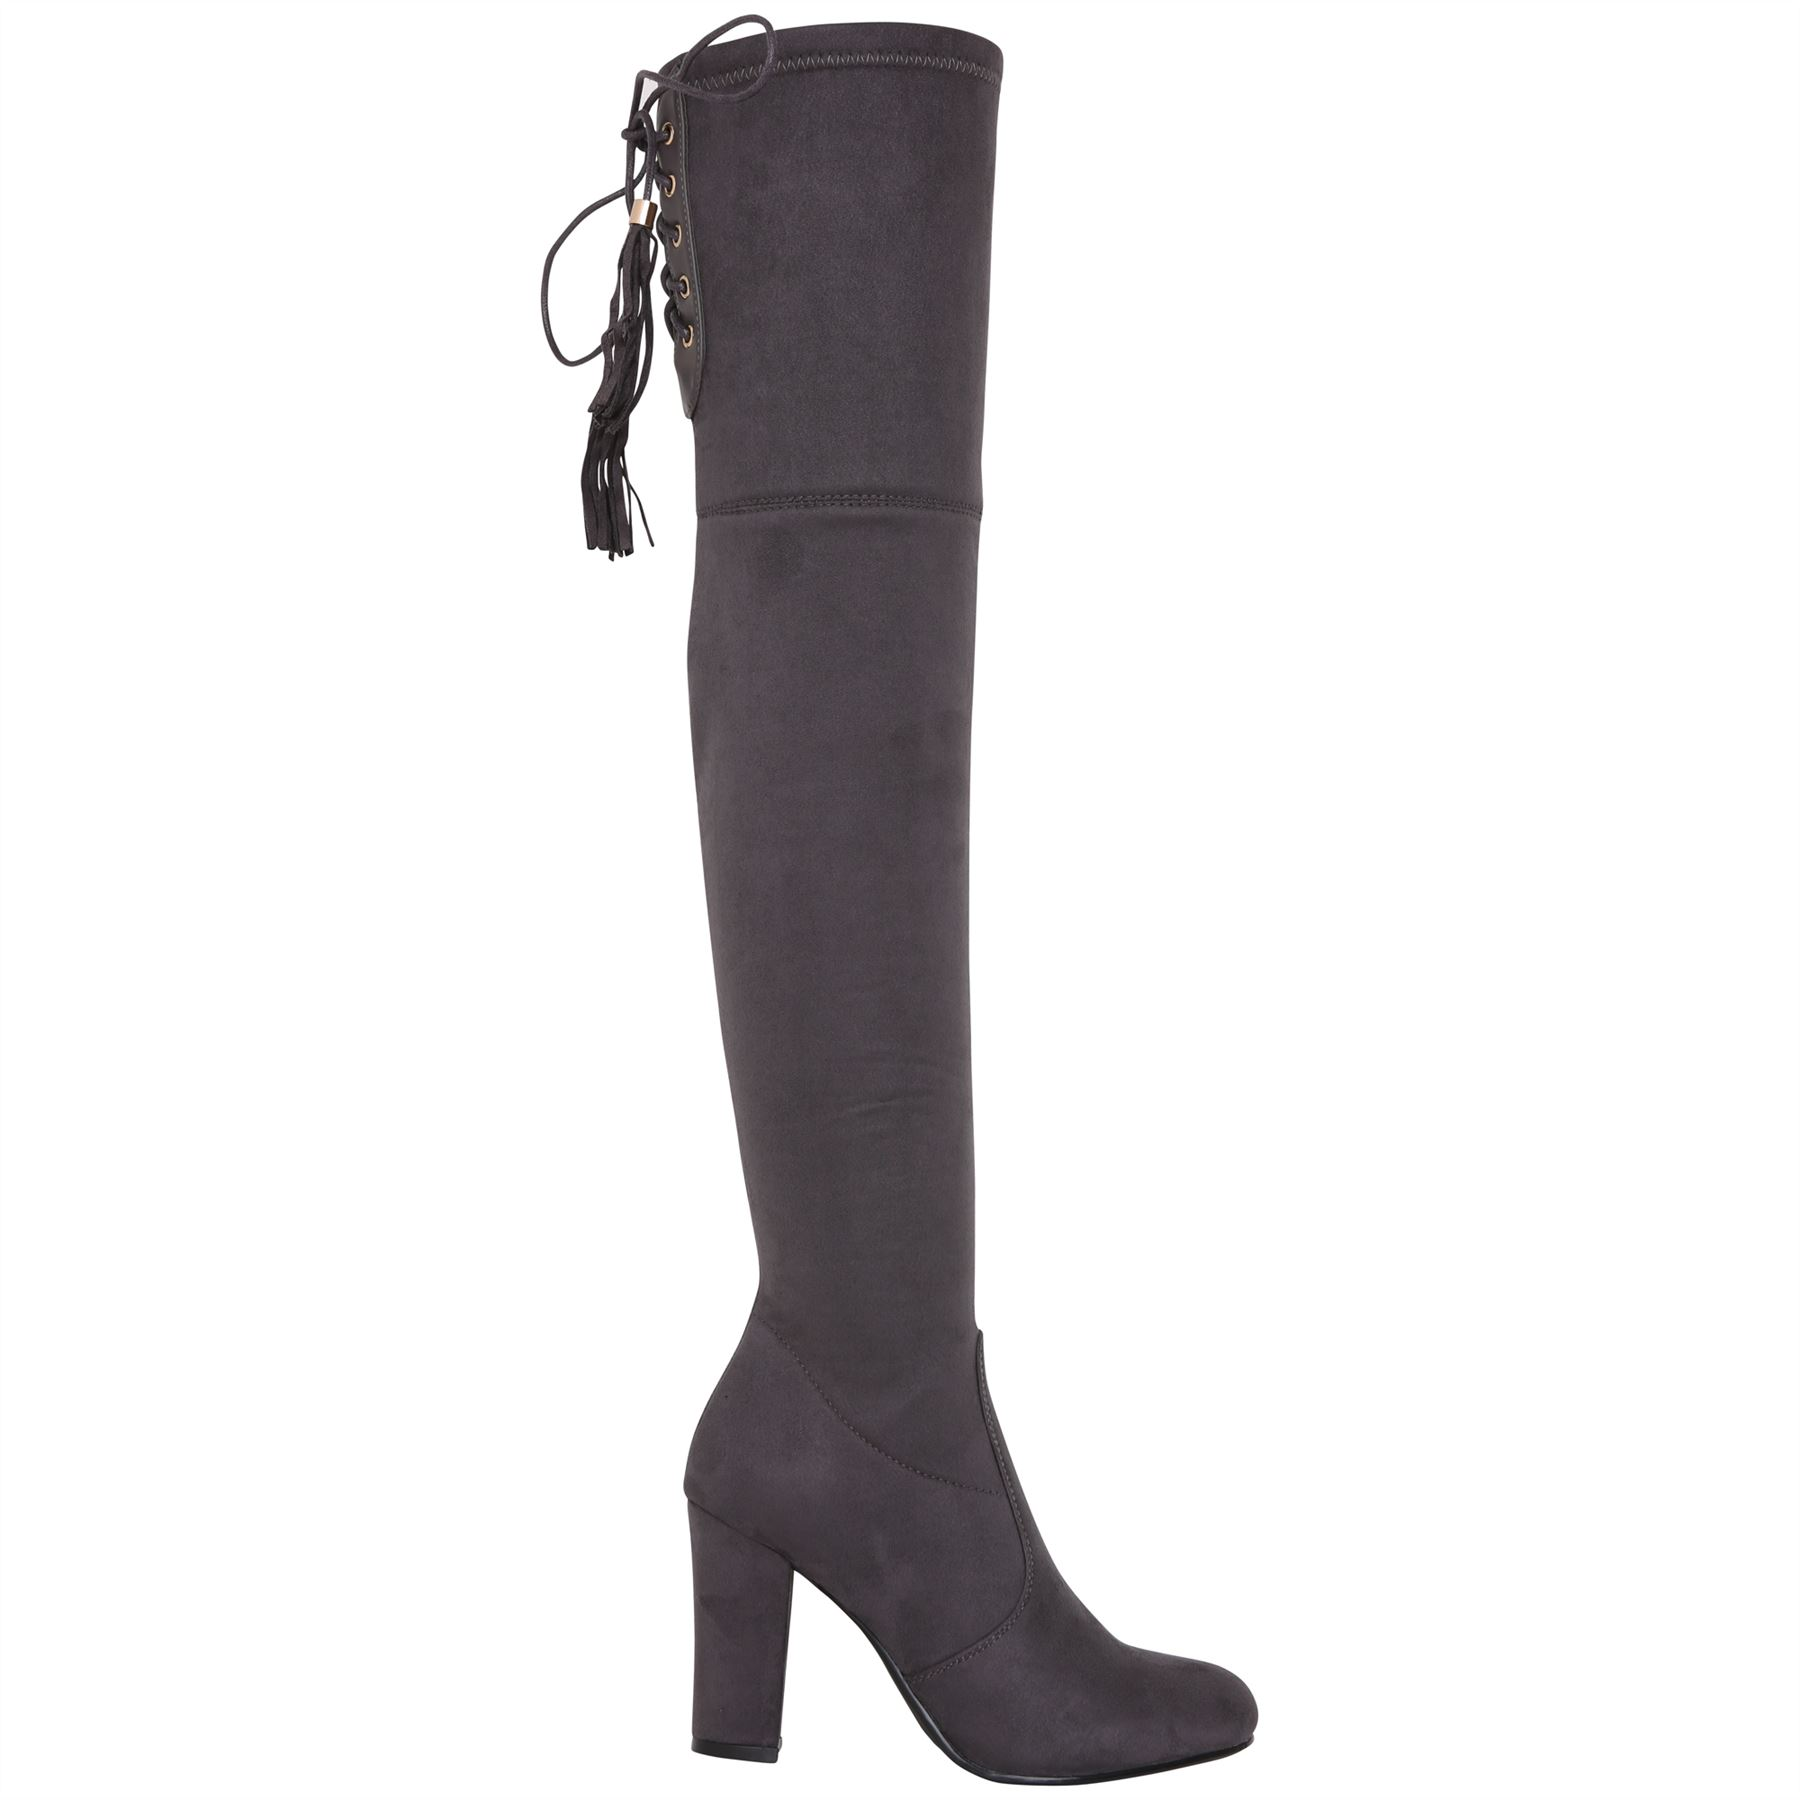 Womens-Over-Knee-High-Boots-Ladies-Low-Block-Heel-Riding-Stretch-Winter-Shoes miniatura 11